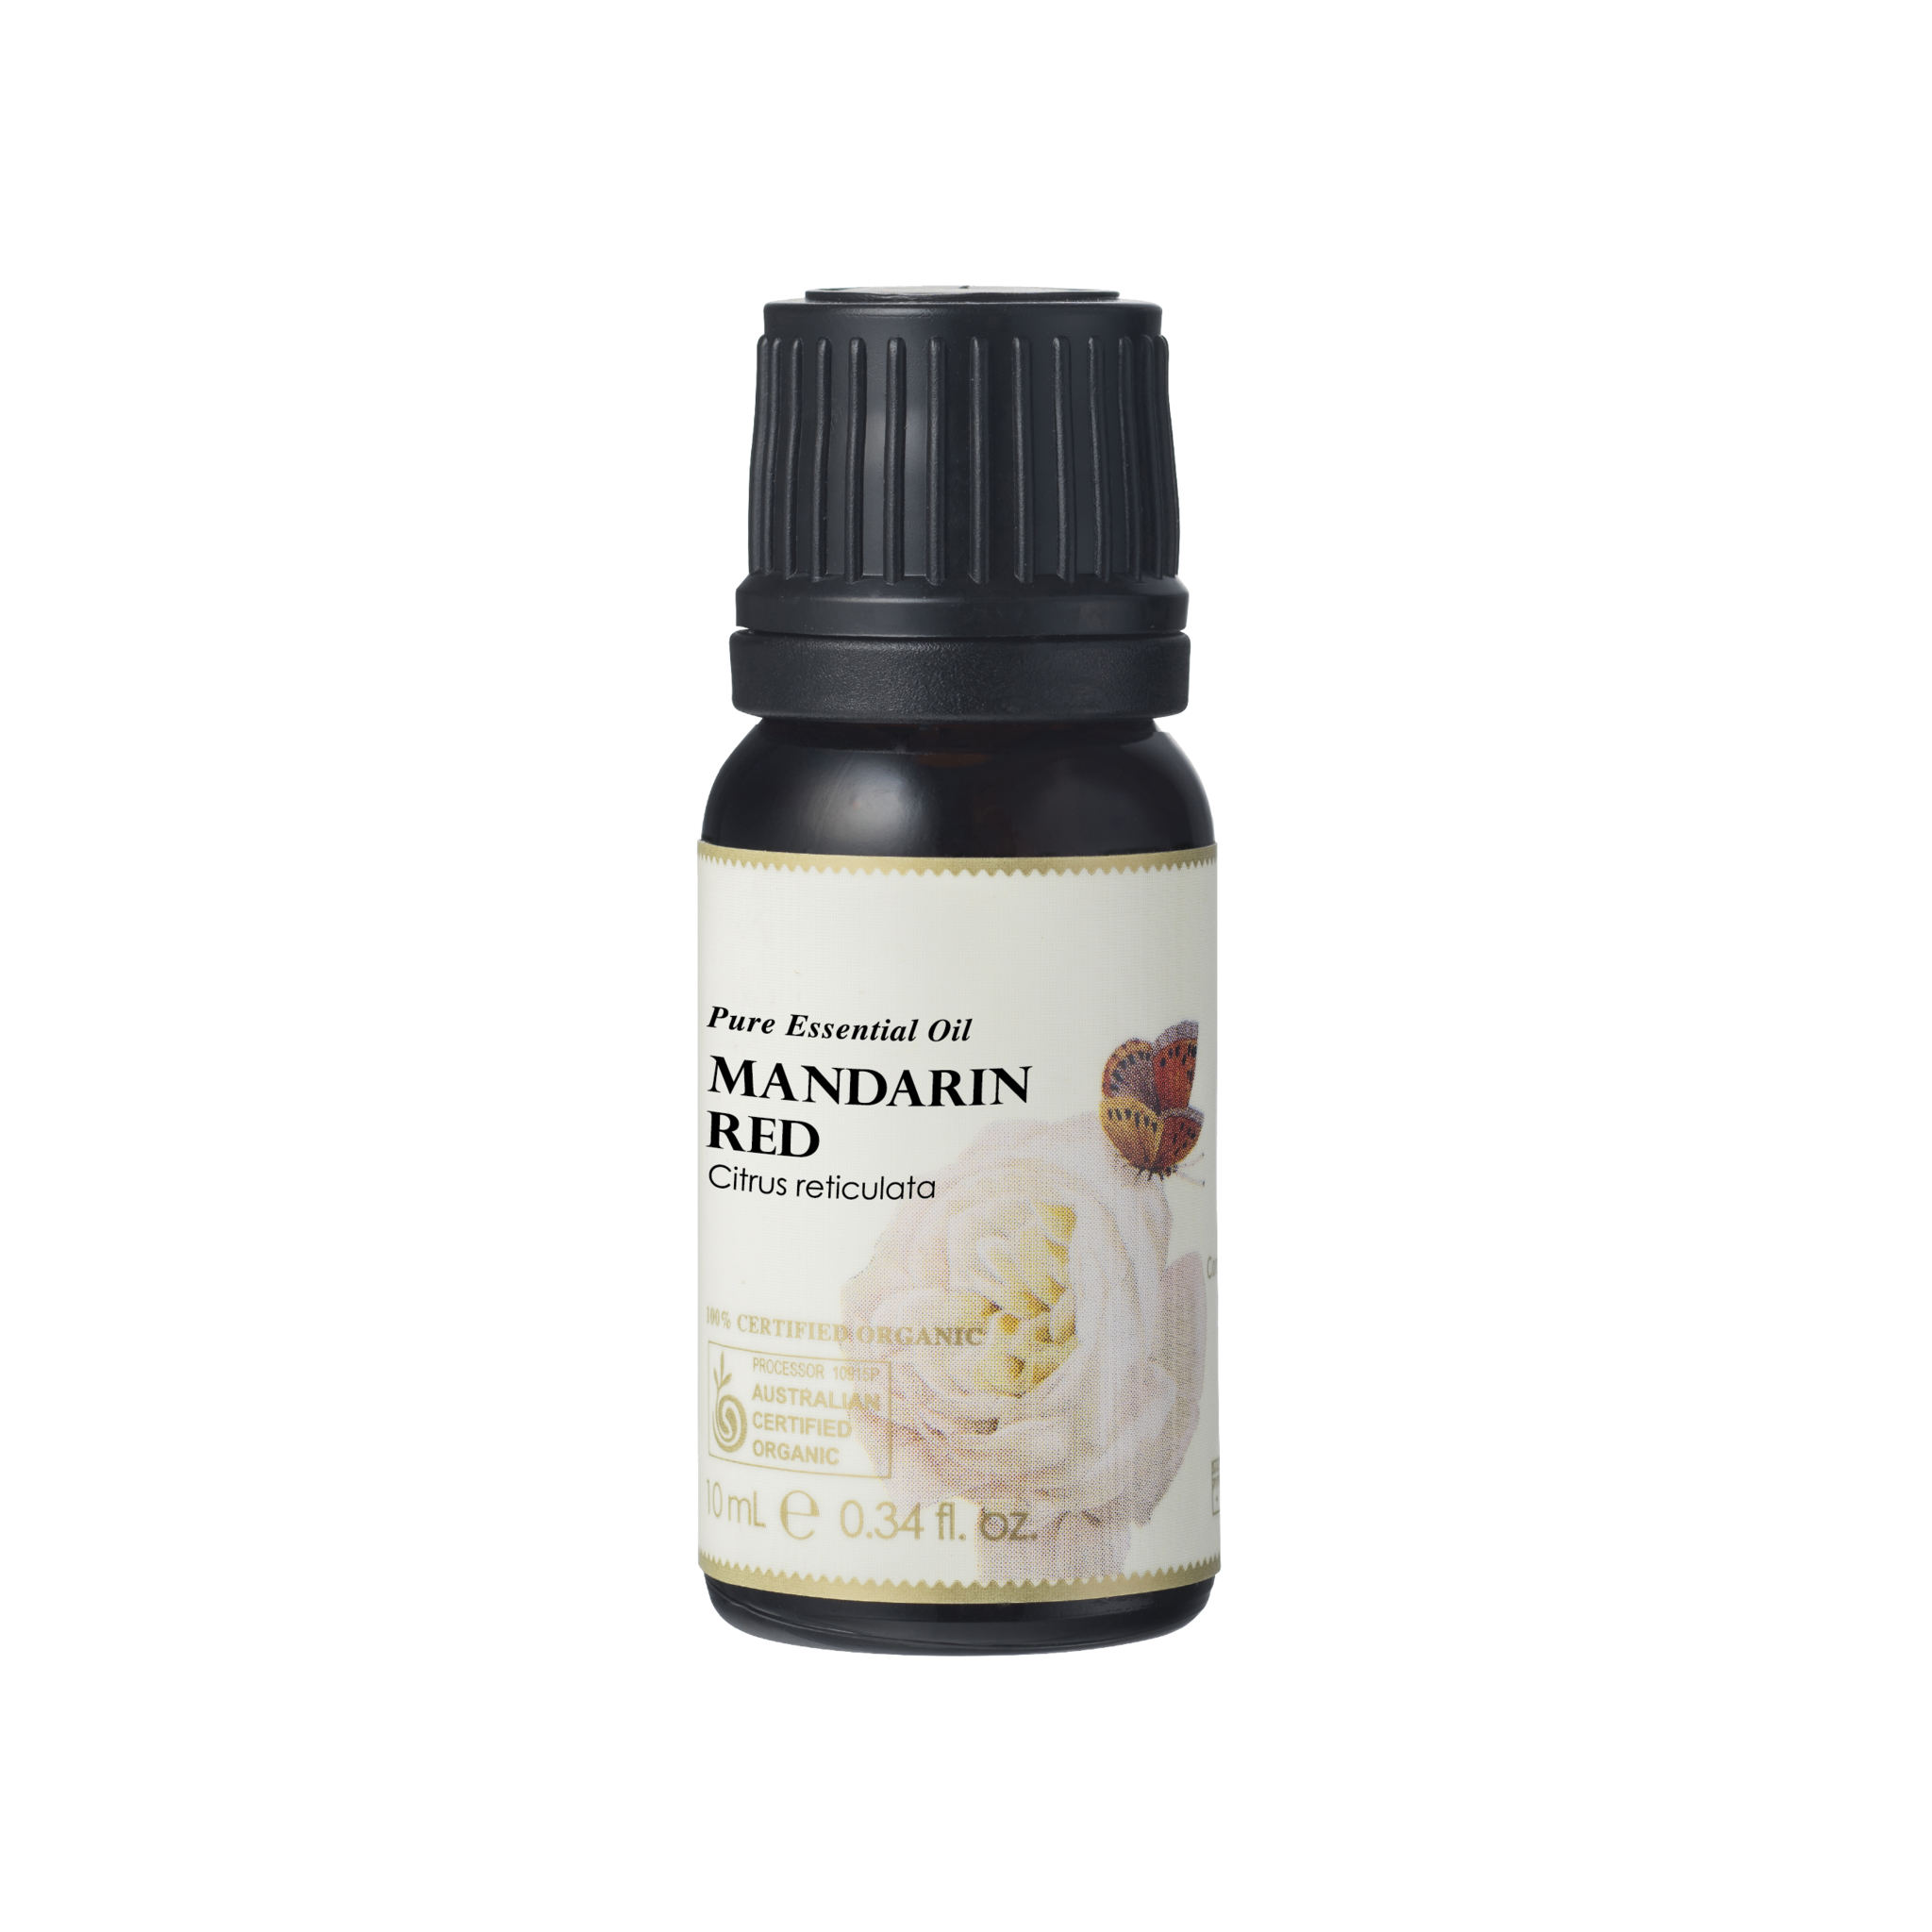 Mandarin Red Essential Oil